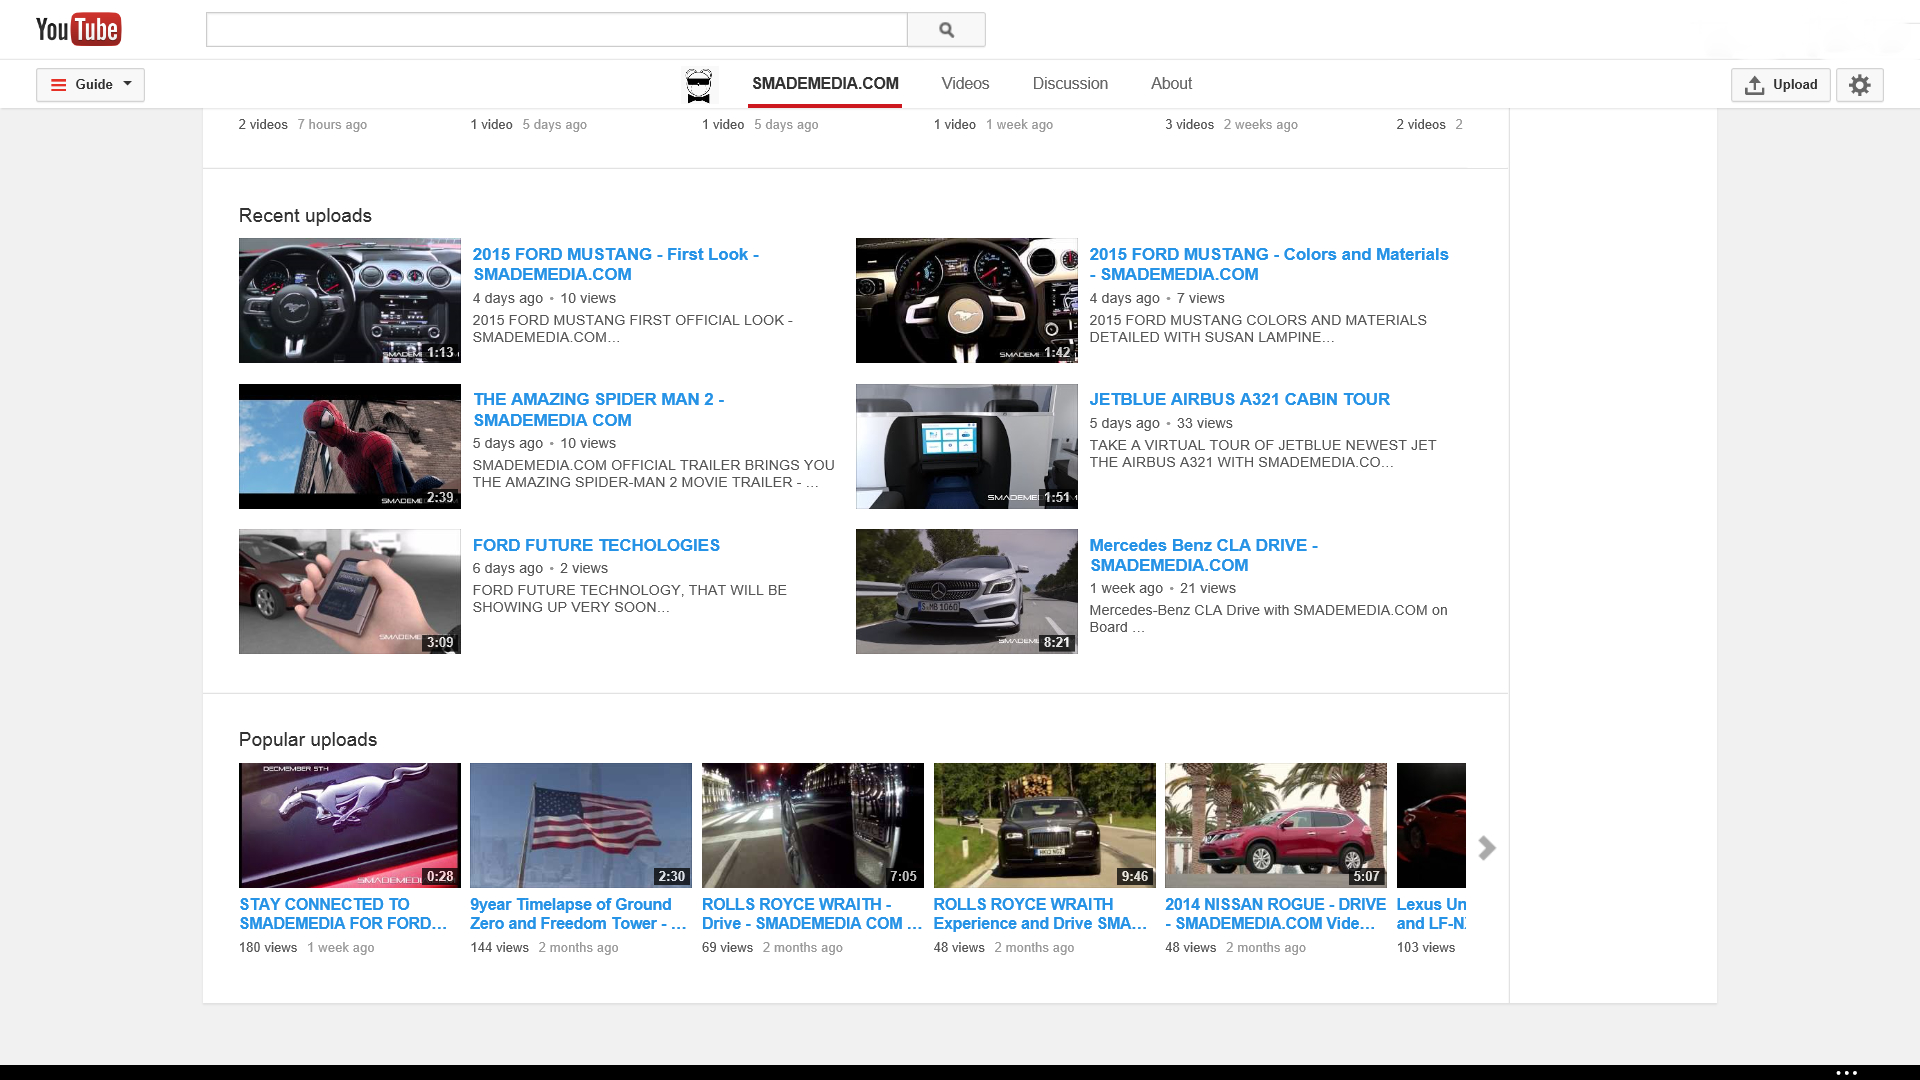 New YouTube Theme Layout - 1- SMADAEMEDIA.COM Galleria (4)